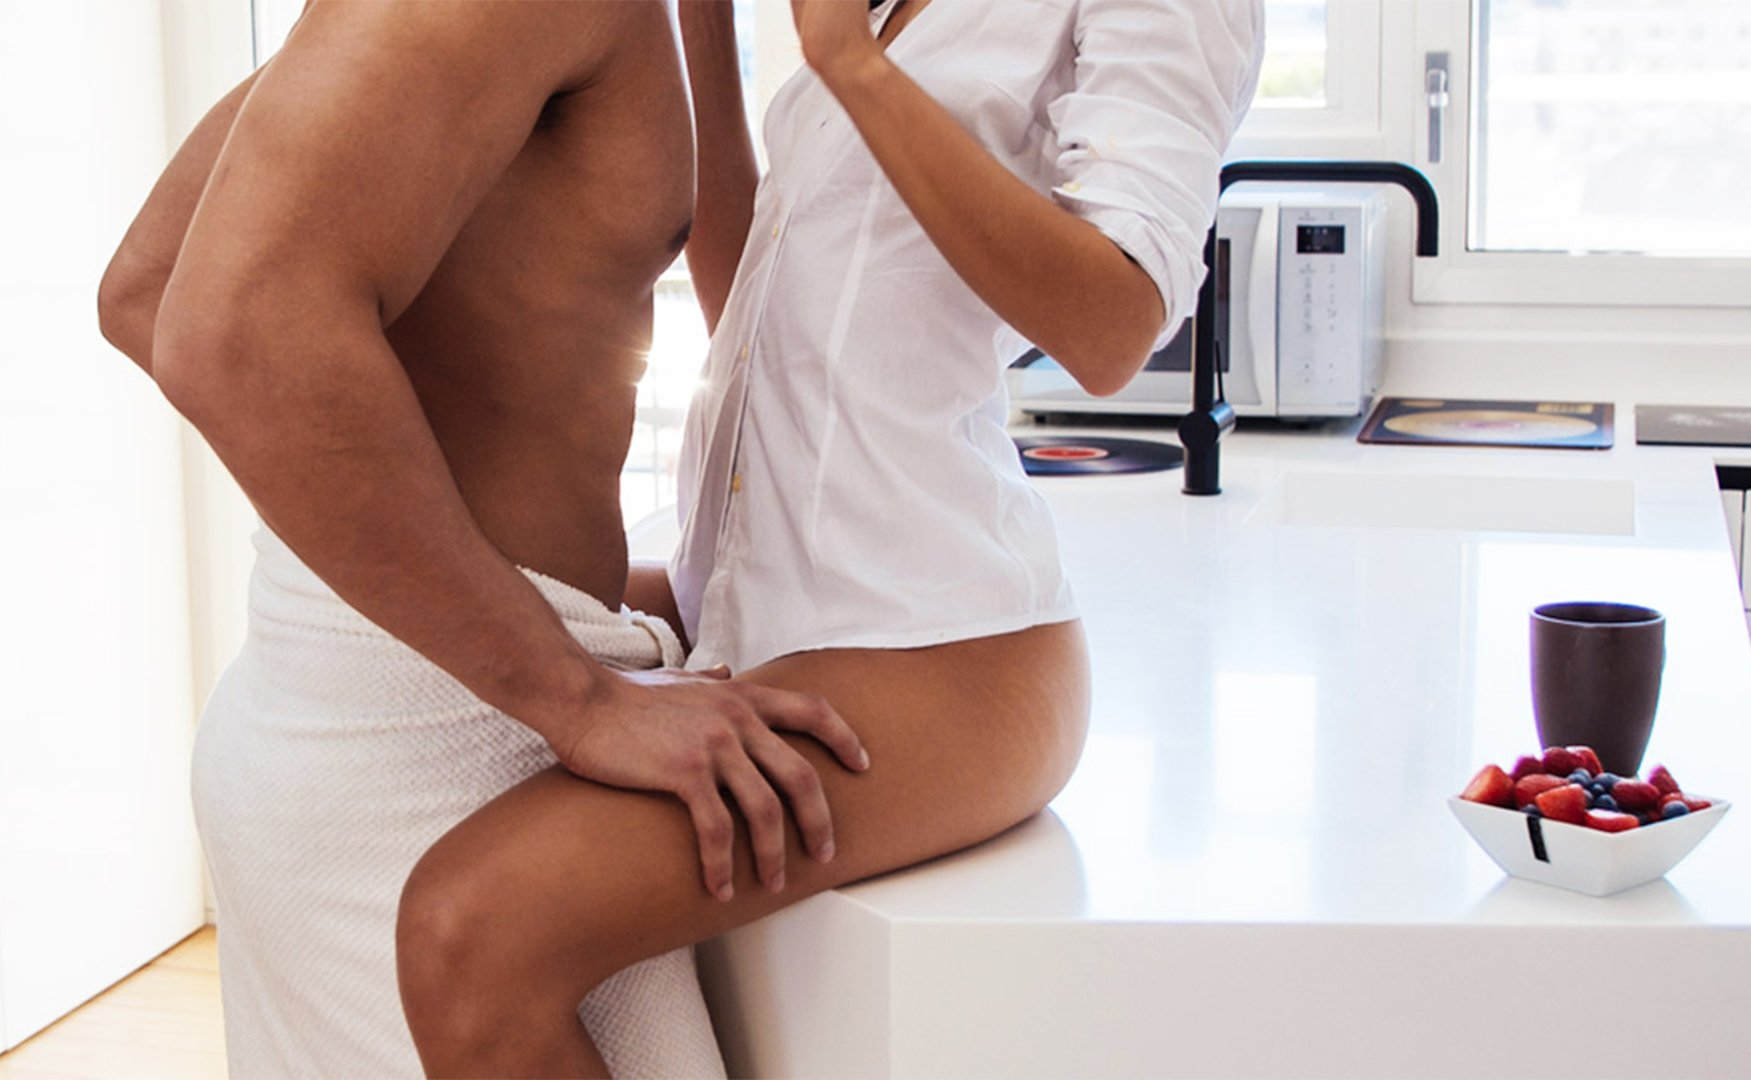 Kick it up another notch - everything you needed to know about kitchen sex